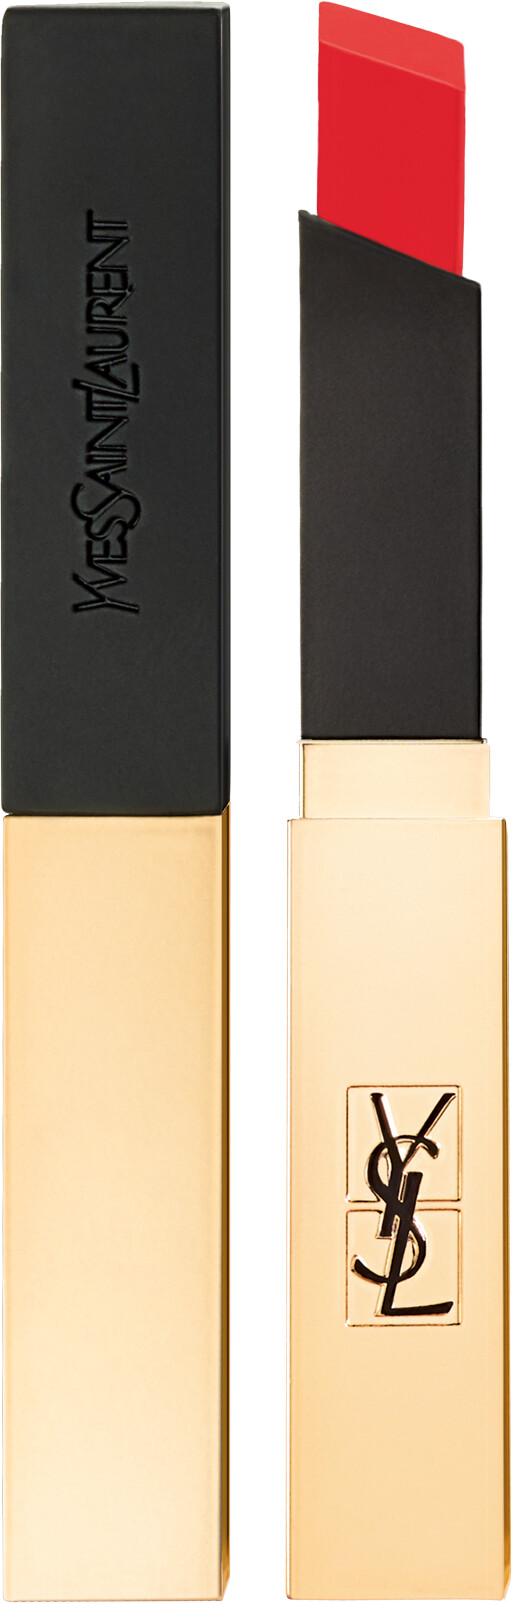 Yves Saint Laurent YSL The Slim Leather-Matte Lipstick 2.2 Gr. 3 Orange Illusion